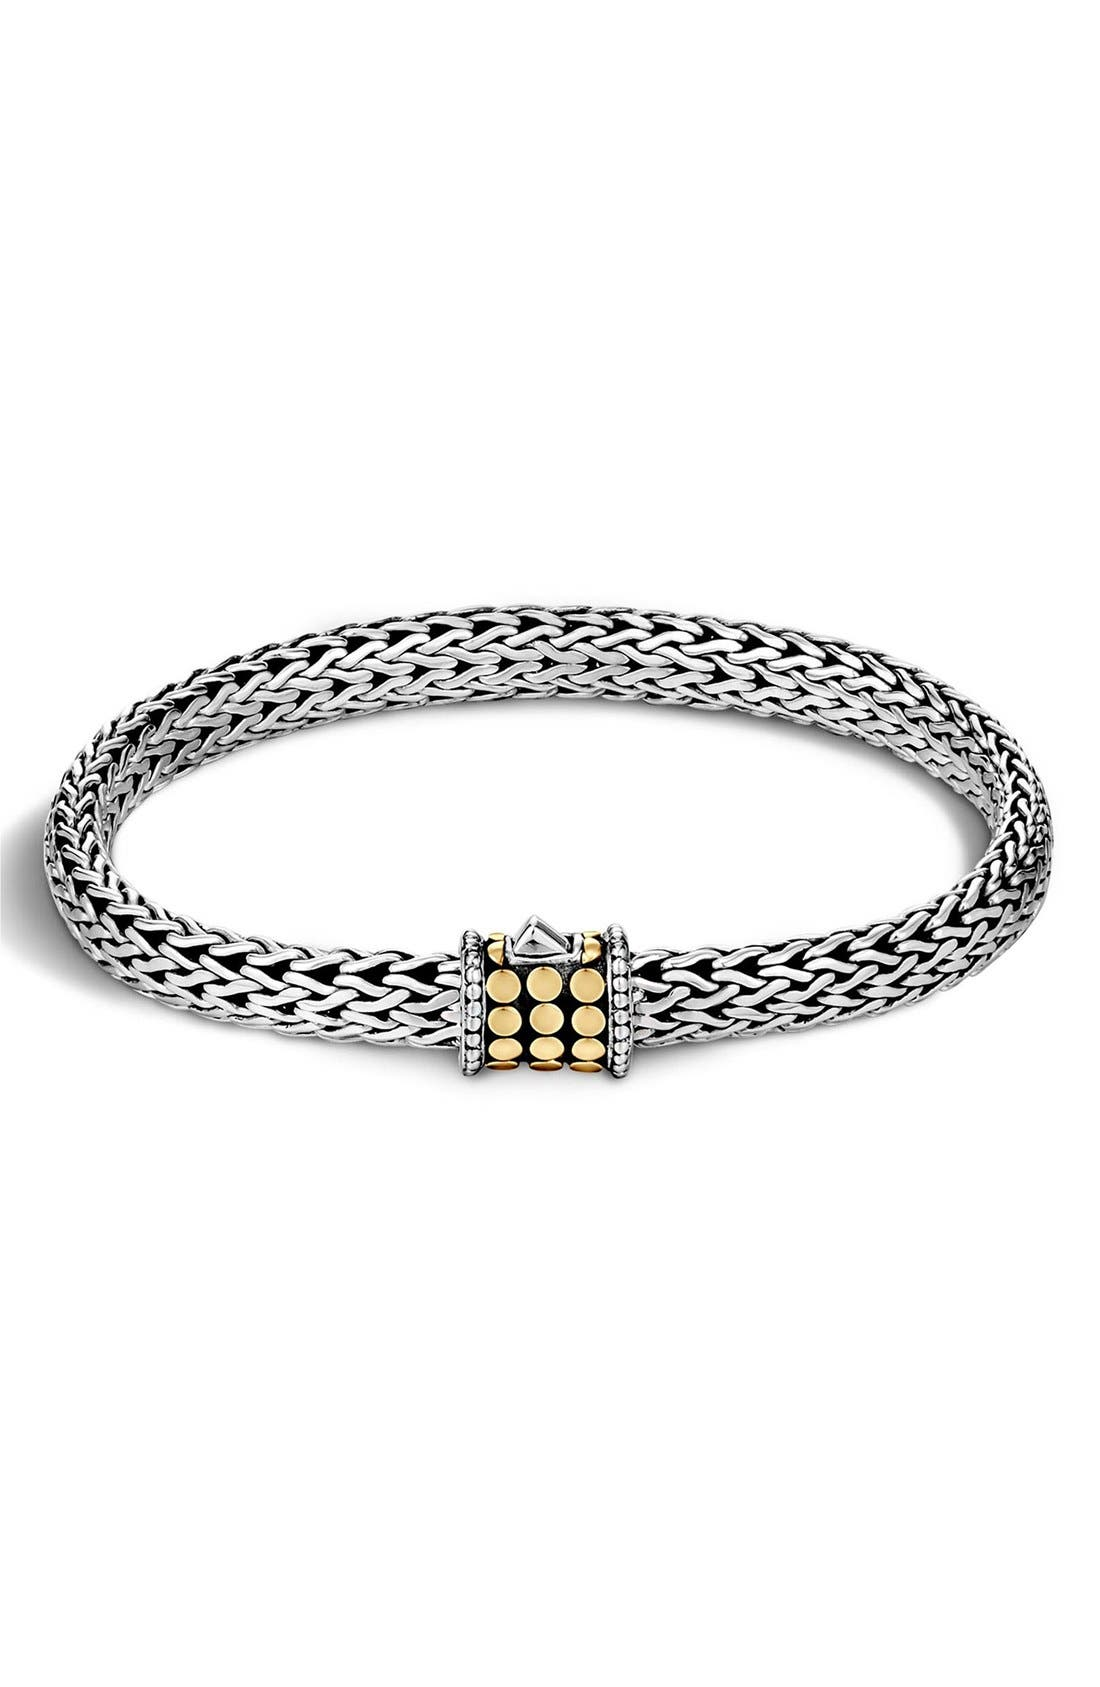 John Hardy Dot 6.5mm Bracelet